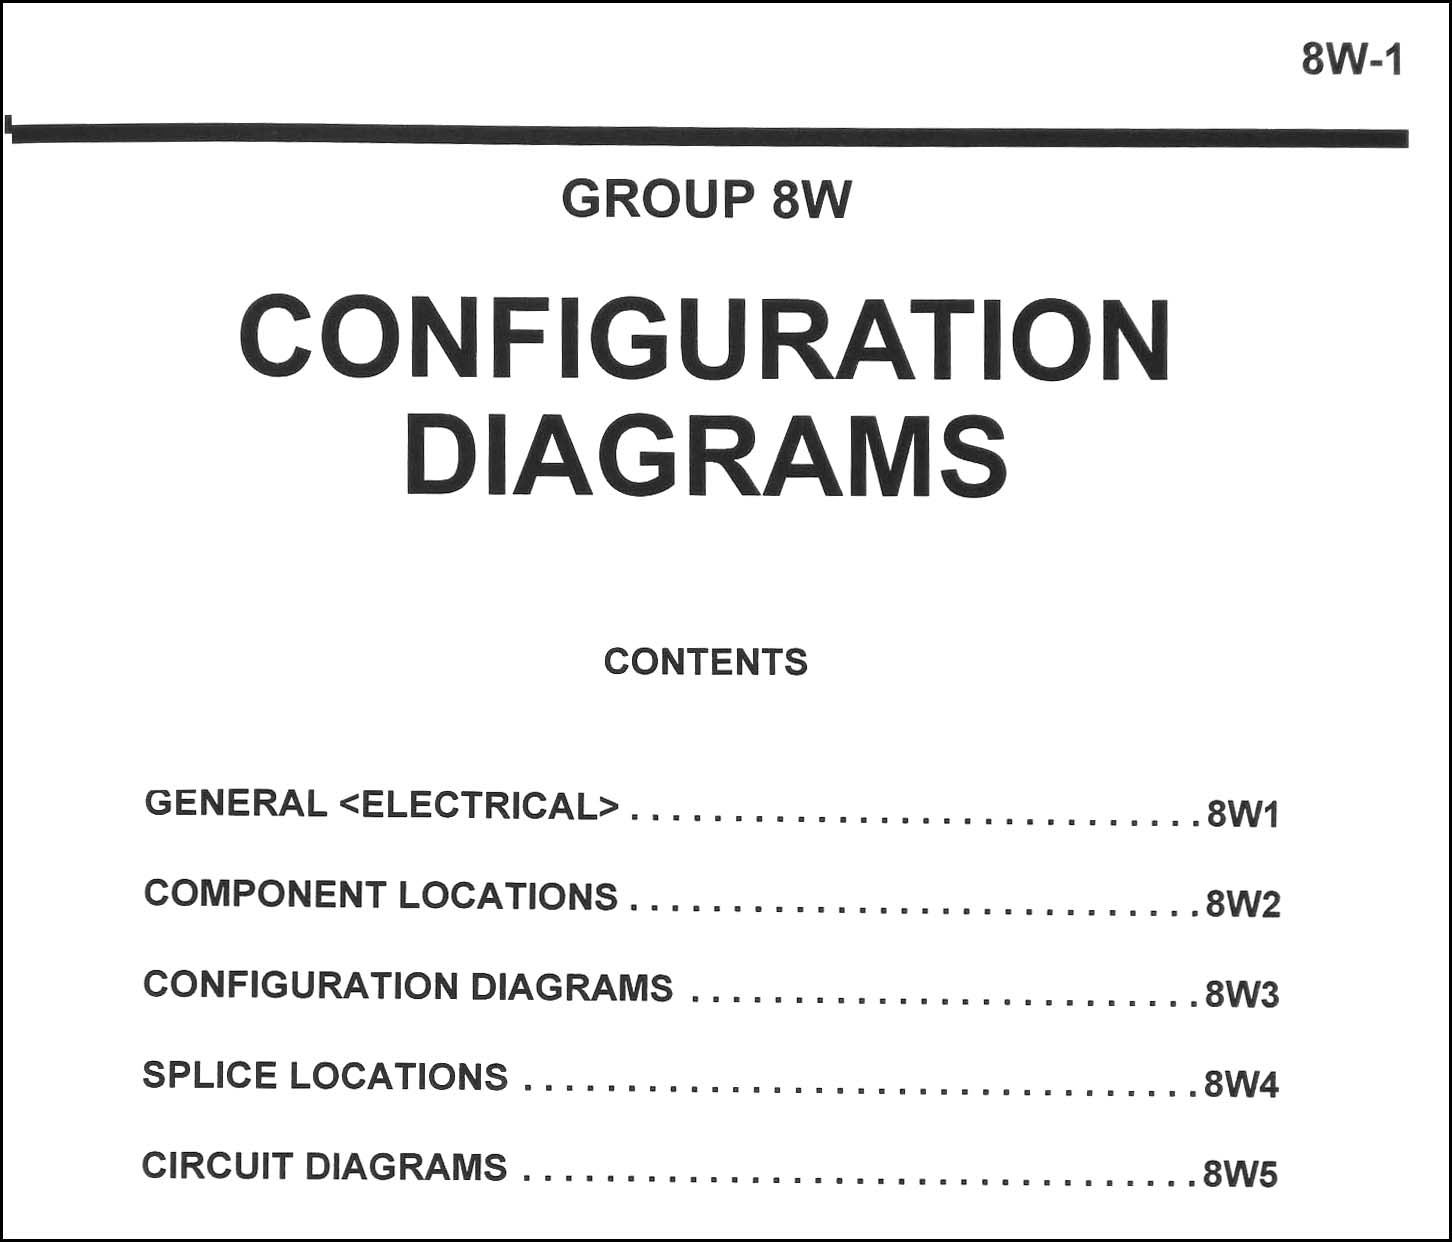 2005 Chrysler Sebring Dodge Stratus Coupe Wiring Diagram Manual Original Diagrams Table Of Contents Page